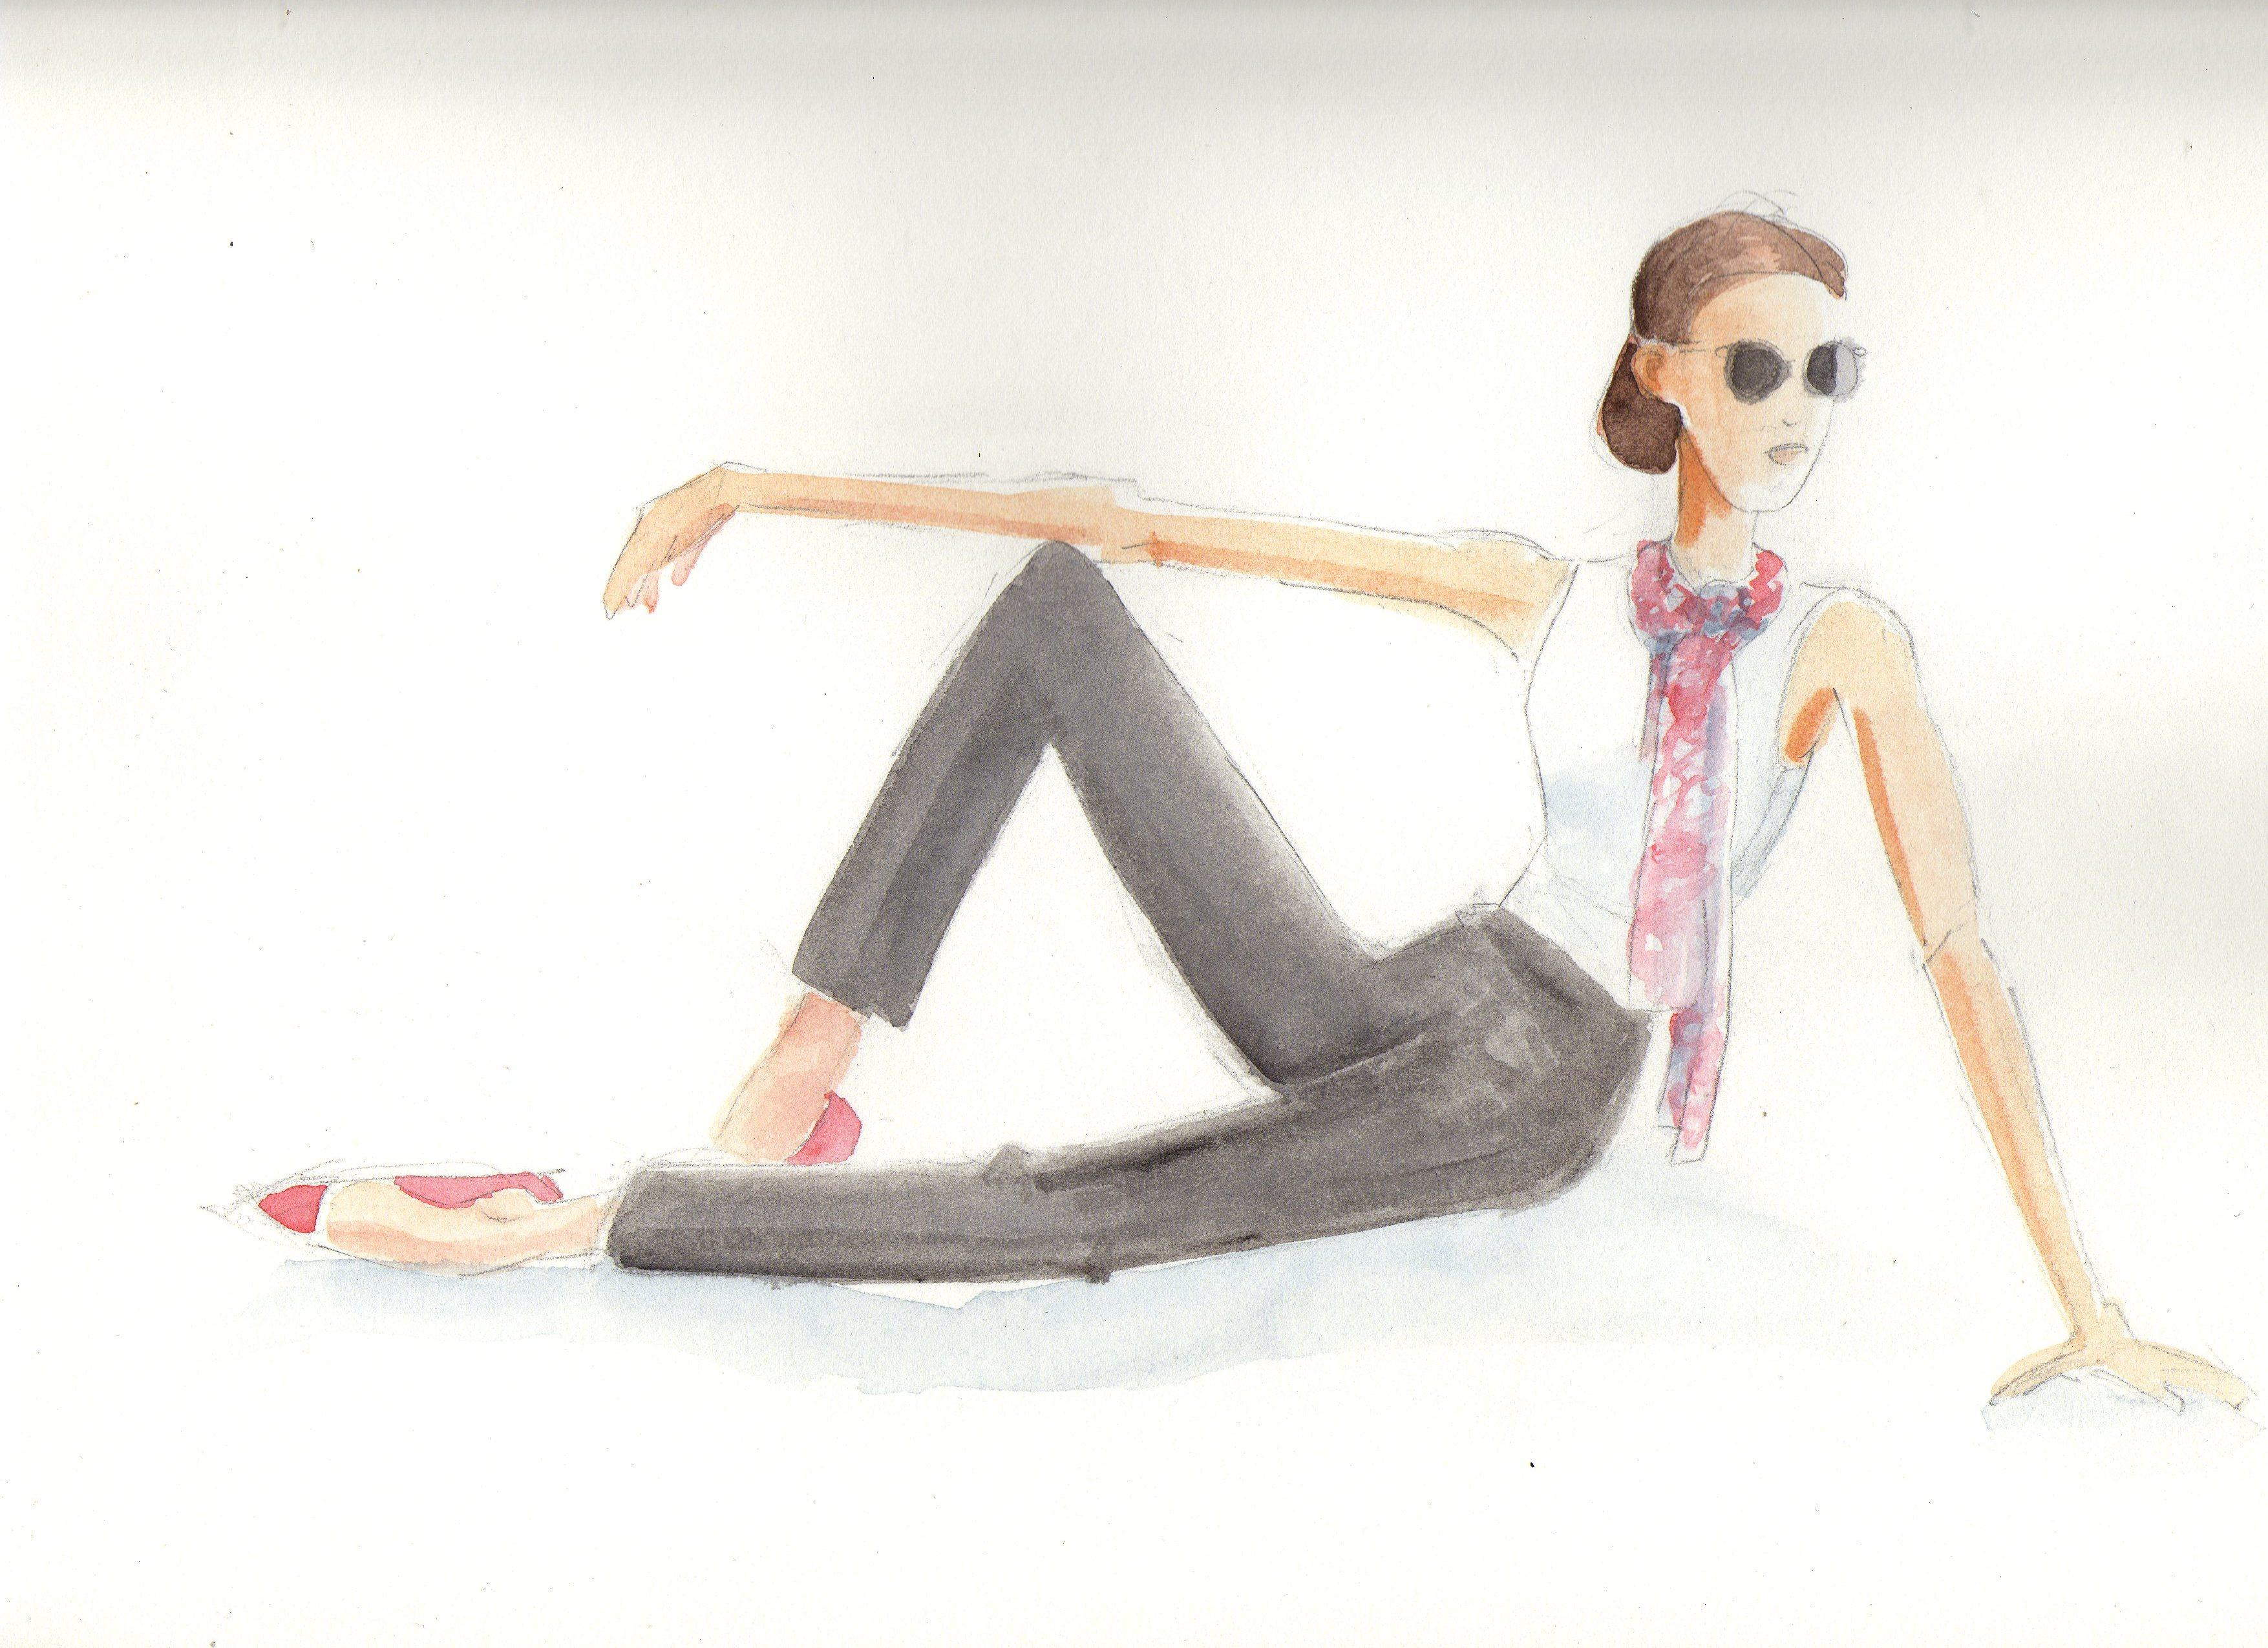 Fun with Watercolor Fashion Mashup - image 3 - student project